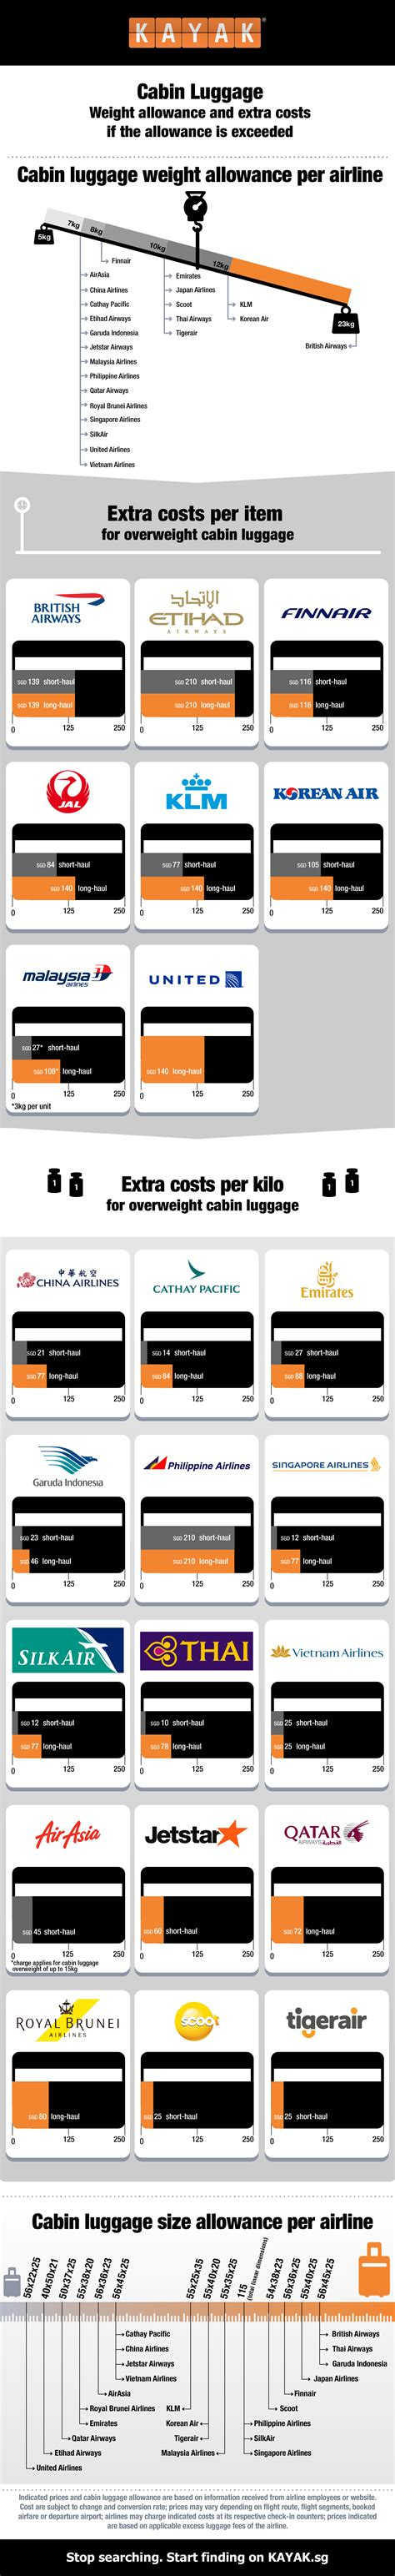 United Checked Baggage Fee by Travel Hack Cost Of Excess Cabin Baggages Revealed For 23 Airlines Alvinology